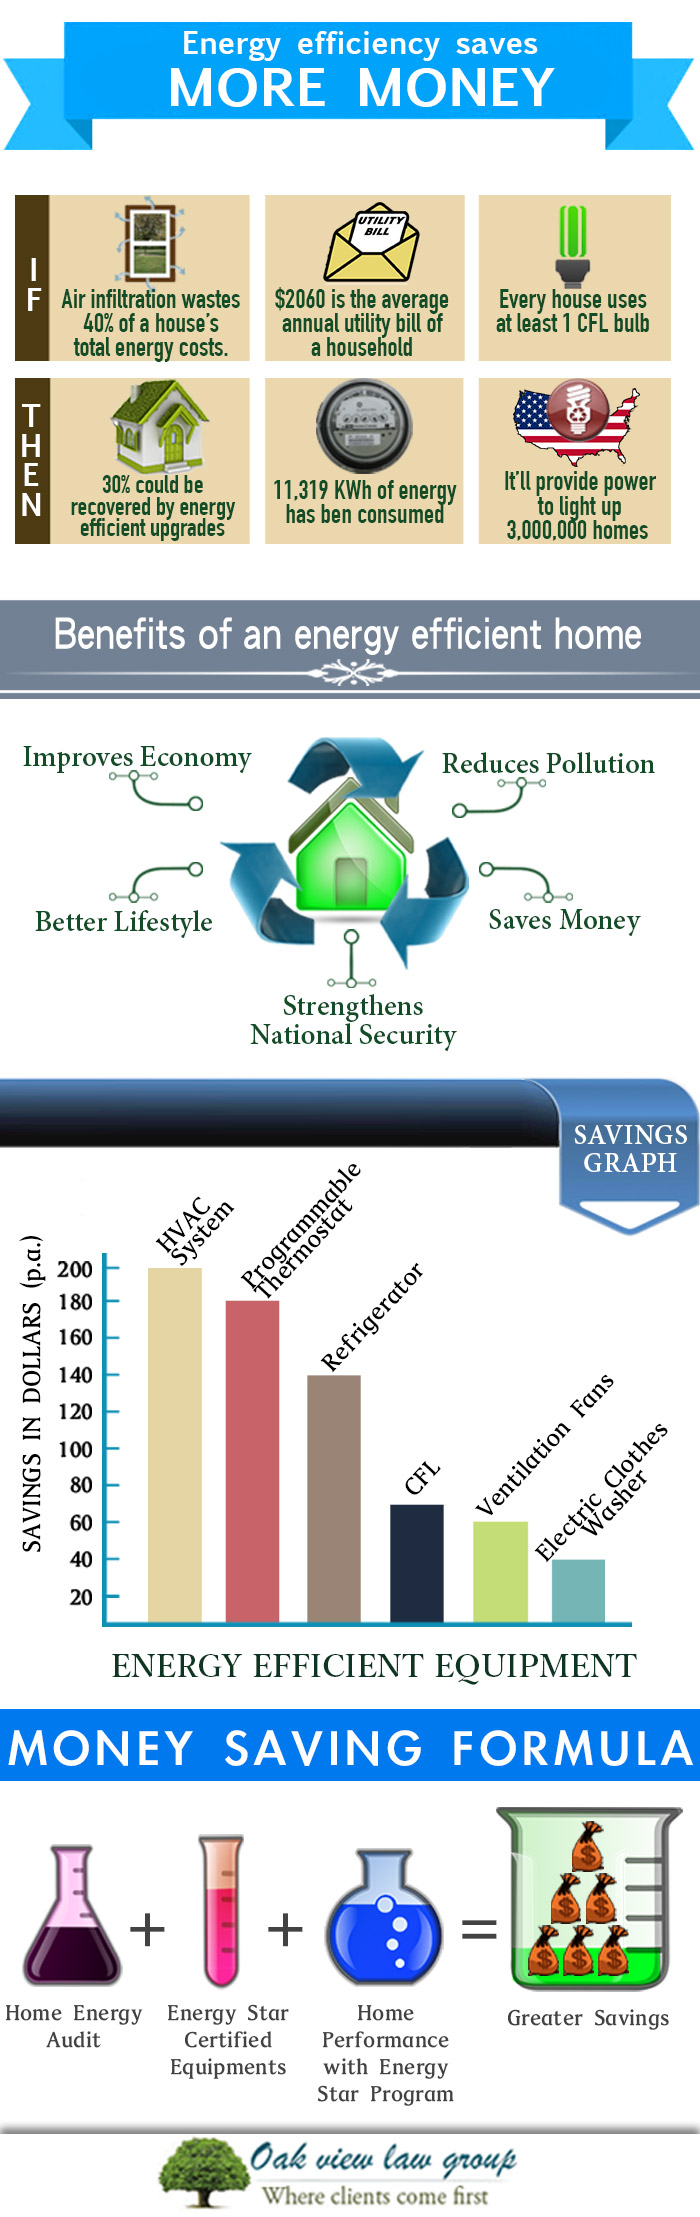 How energy efficient homes save more money